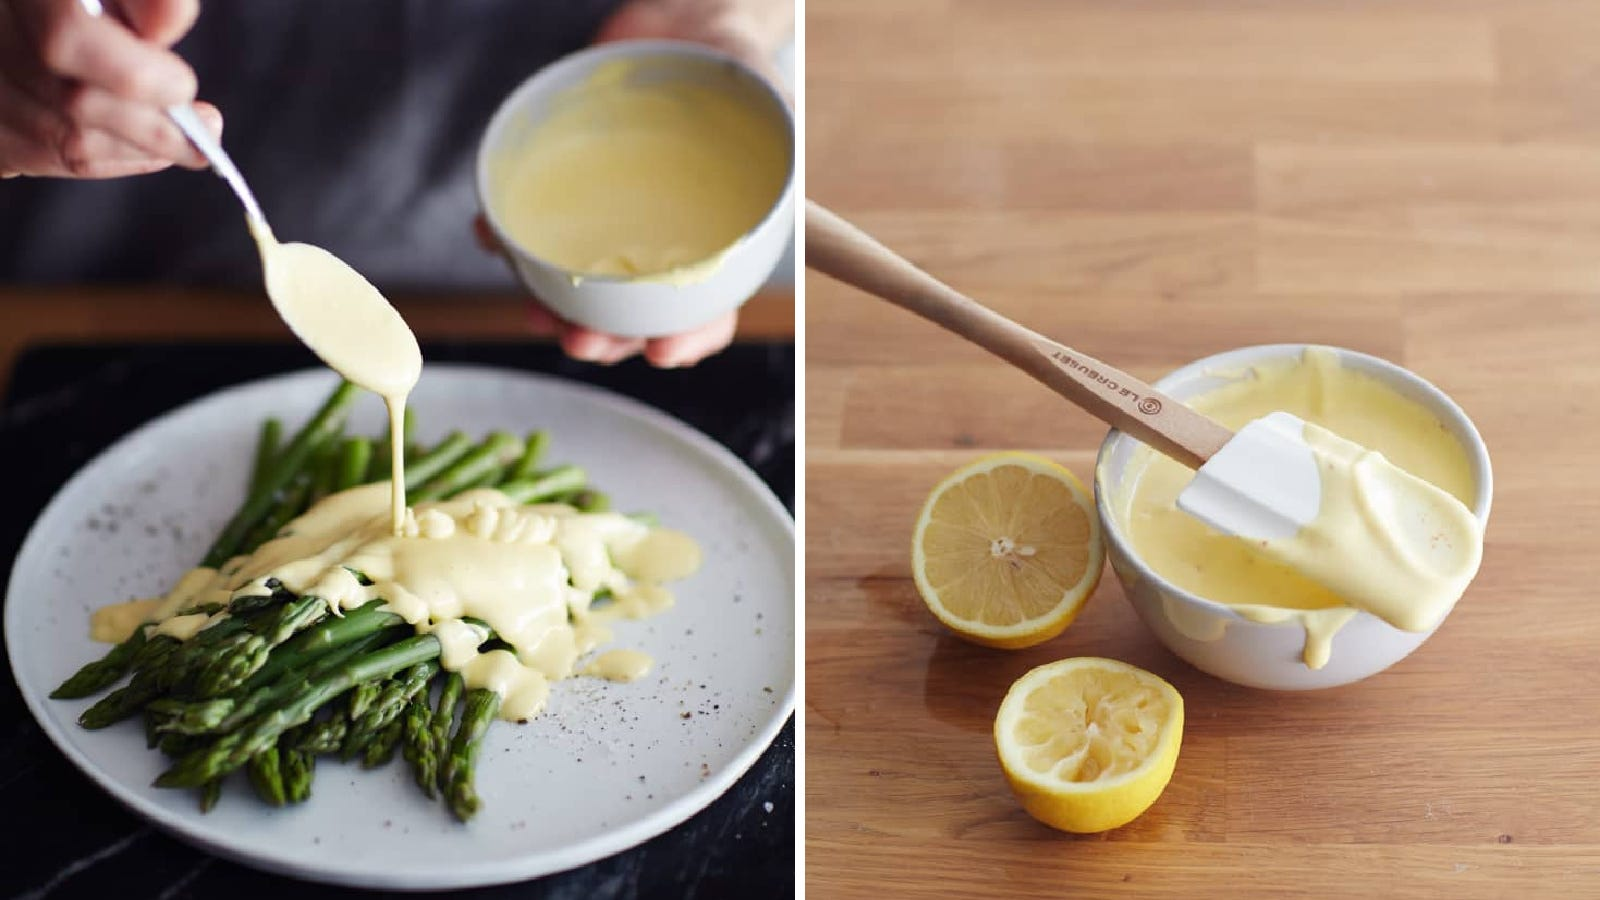 Two images of hollandaise sauce made by the blender method from The Kitchn, including sauce drizzled over asparagus, and another image of hollandaise sauce along side of a halved and squeezed lemon.